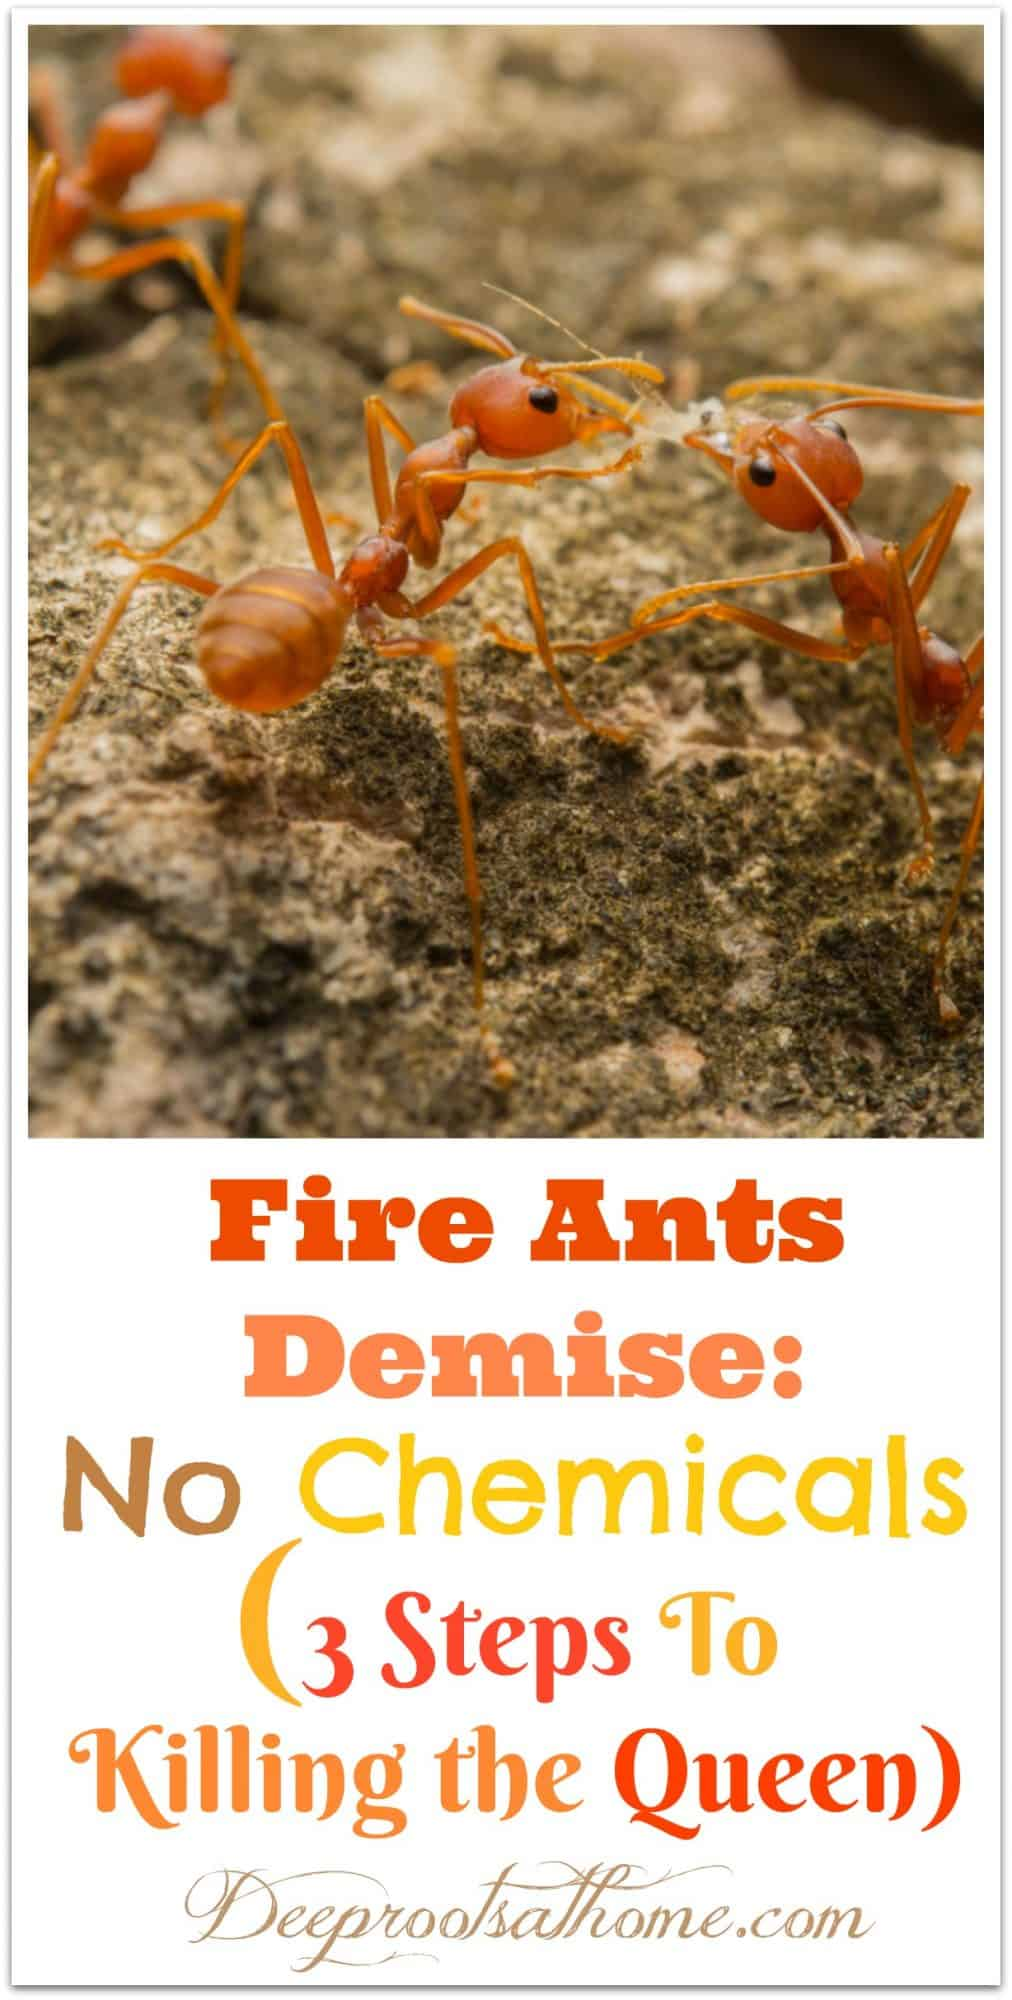 Fire Ants Kill The Queen No Chemicals If You Do These 3 Steps